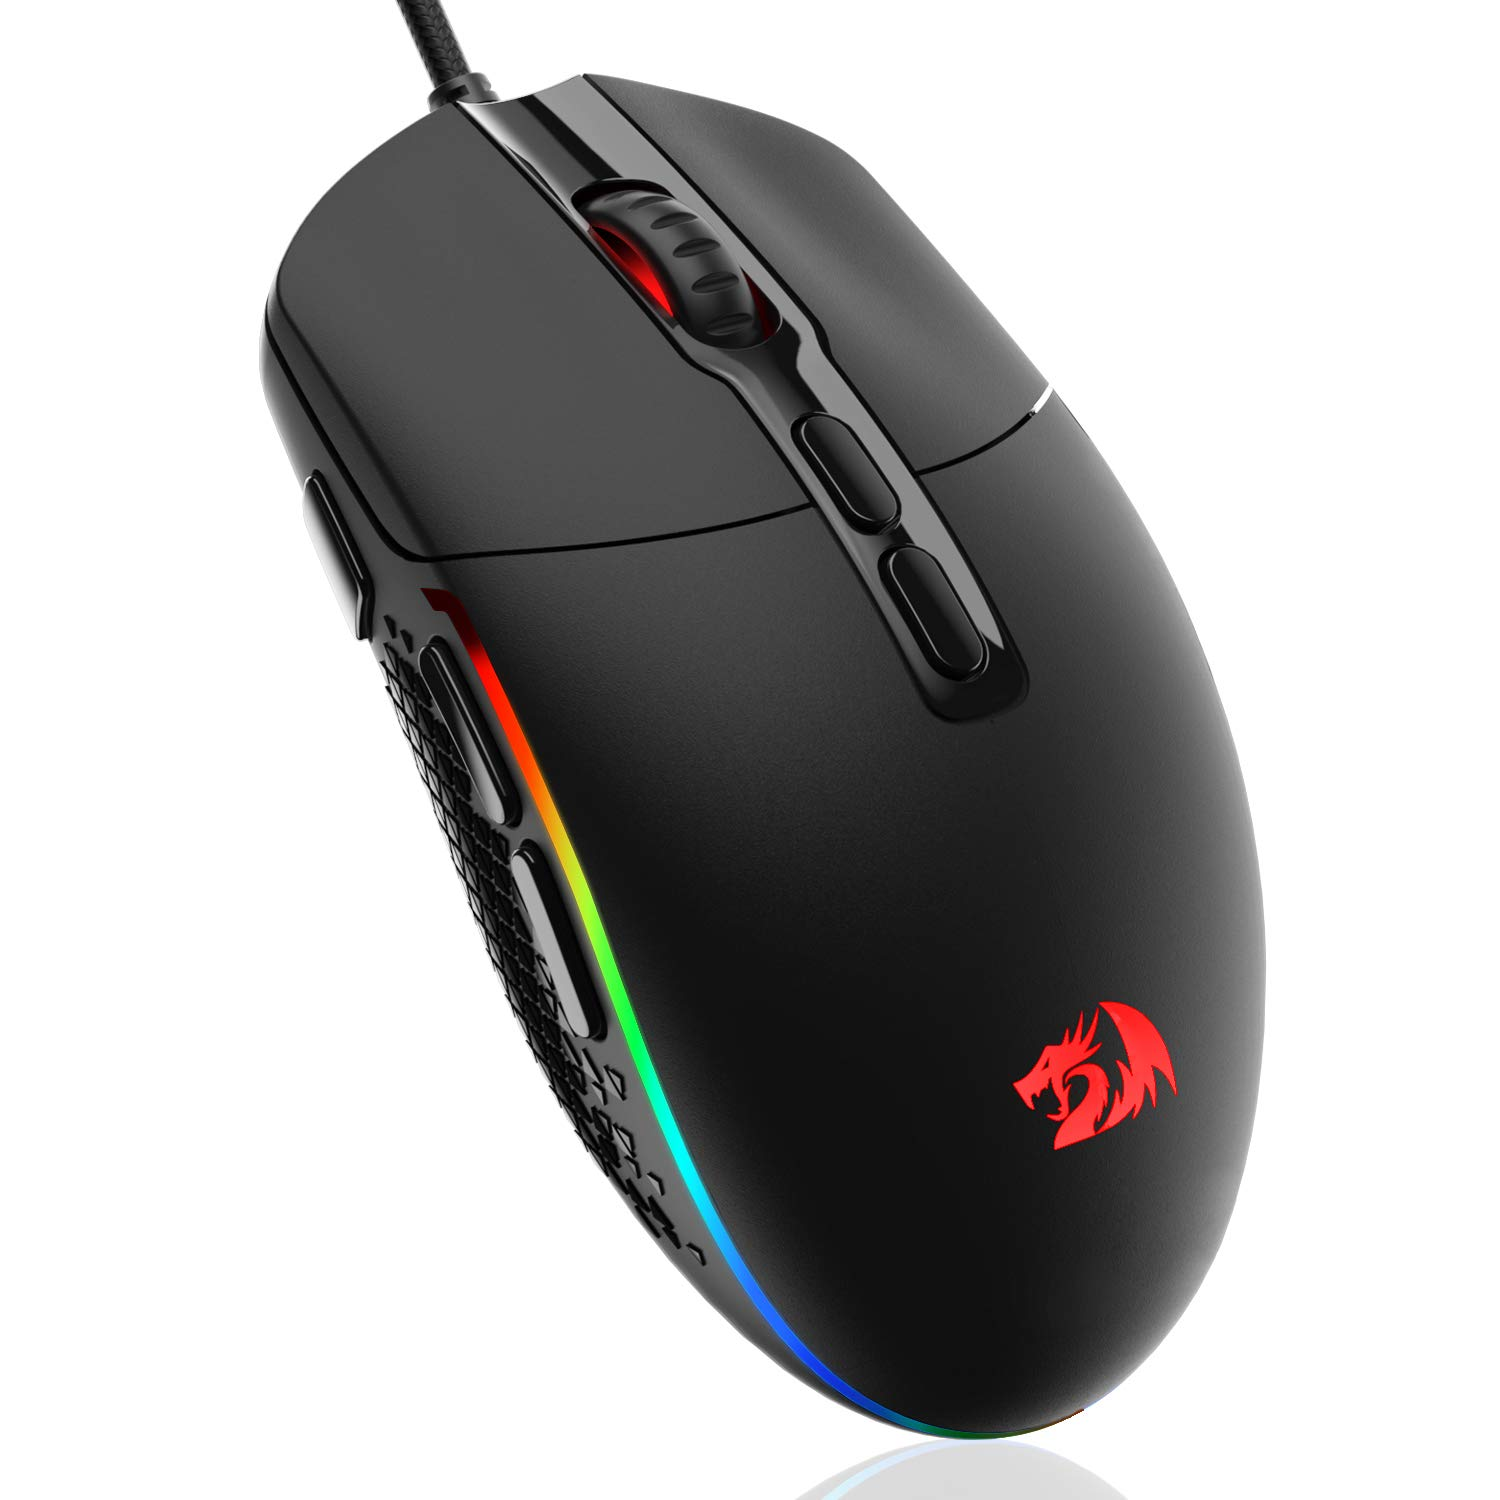 Redragon M719 Invader Wired Optical Gaming Mouse, 7 Programmable Buttons, RGB Backlit, 10,000 DPI, Ergonomic PC Computer Gaming Mice with Fire Button by Redragon